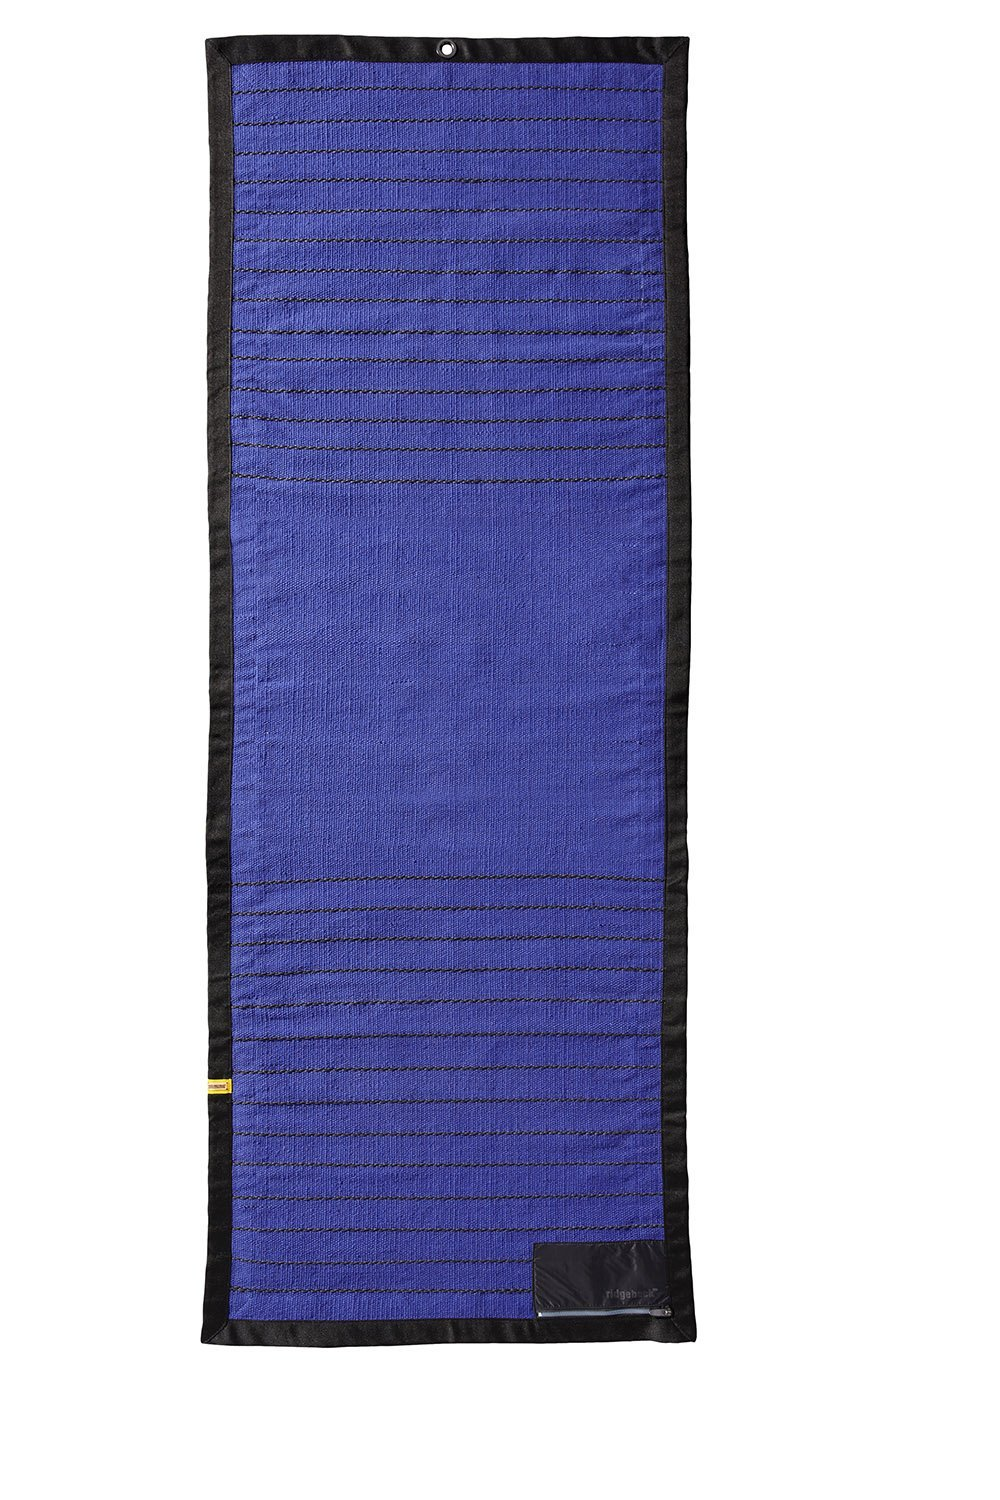 or Stink ridgeback Yoga Rug Towel Alternative with no Slip Twist Lays Over Your mat for Heated//Hot Yoga.